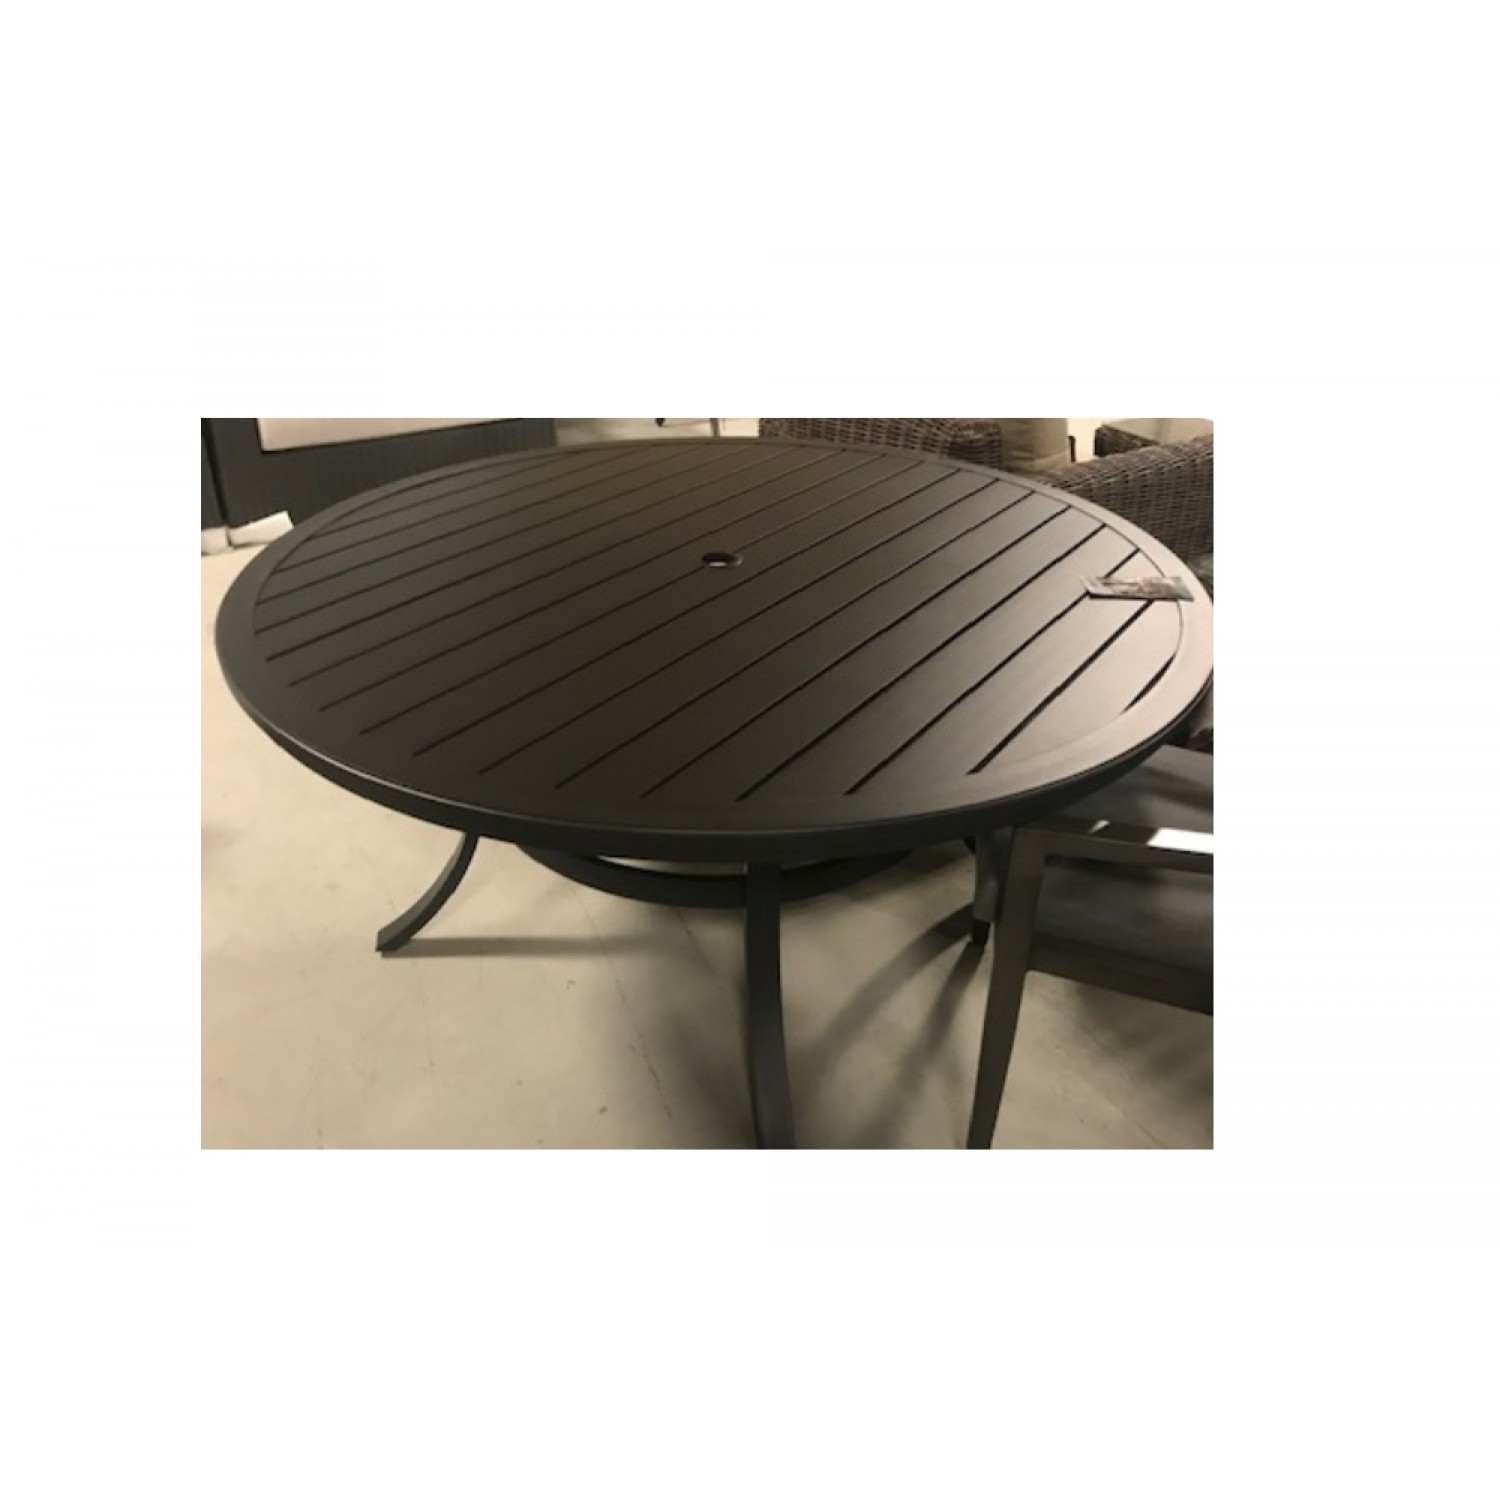 Onsight Round Outdoor Dining Table